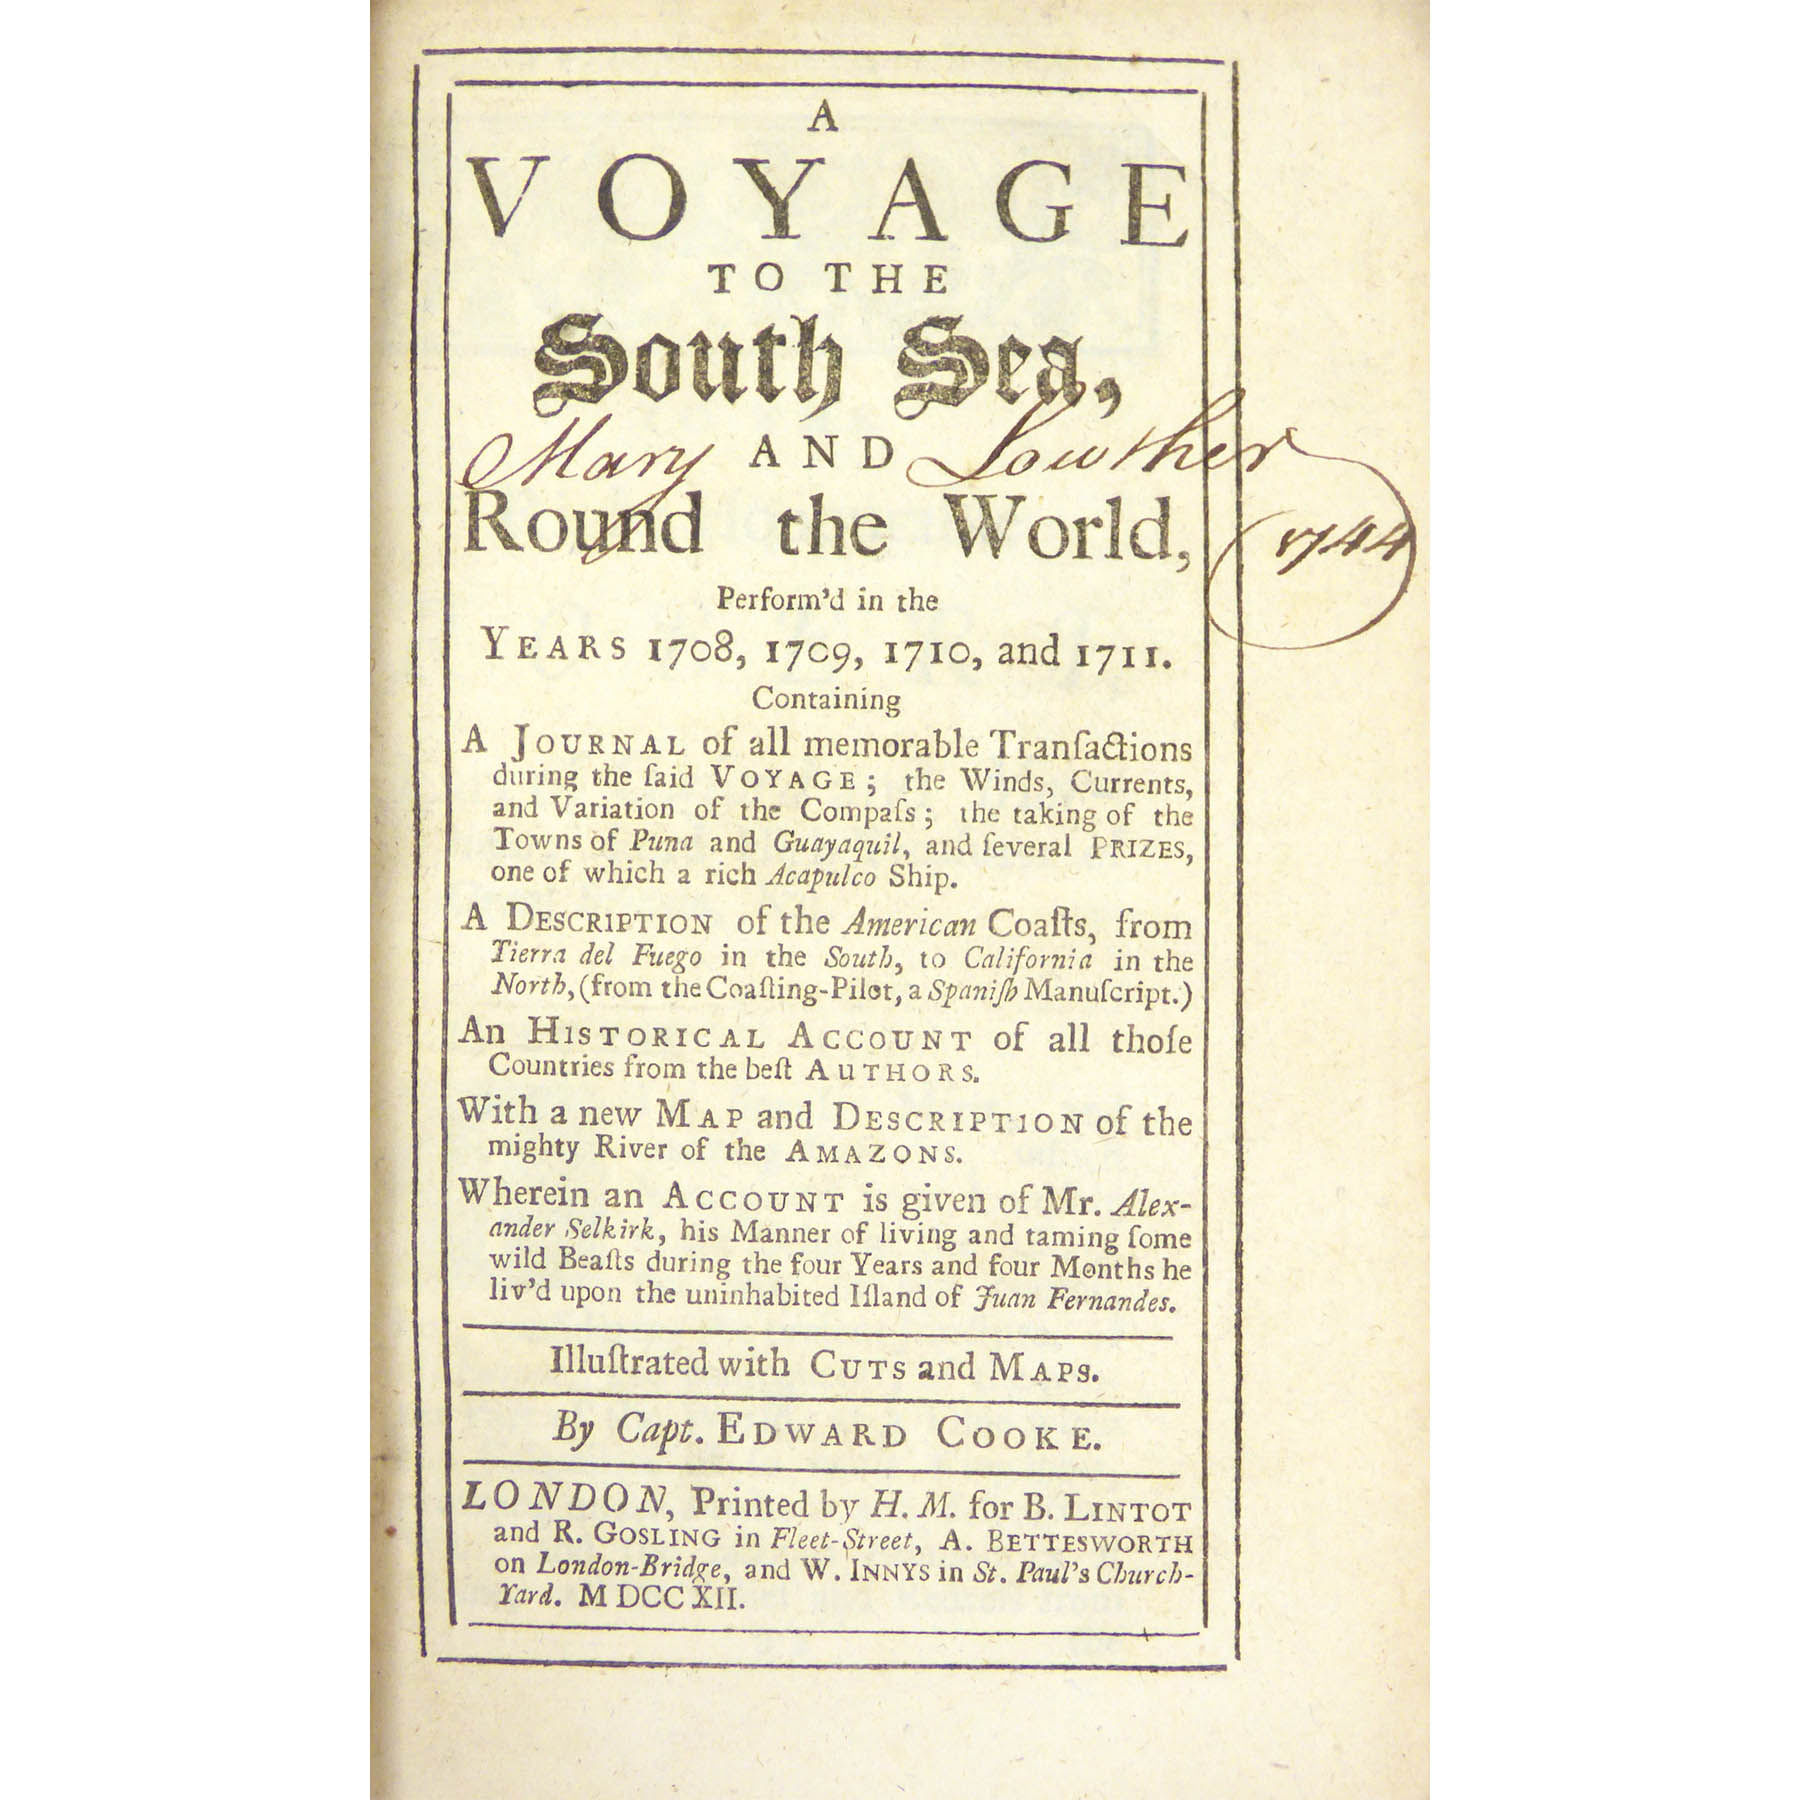 A Voyage to the South Sea, and Round the World, Perform'd in the Years 1708, 1709, 1710, and 1711, by the Ships Duke and Dutchess of Bristol. Containing a Journal of all memorable Transactions during the said Voyage; the Winds, Currents, and Variation of the Compass; the taking of the Towns of Puna and Guayaquil, and several Prizes, one of which a rich Acapulco Ship. A Description of the American Coasts, from Tierra del Fuego in the South, to California in the North, (from the Coasting-Pilot, a Spanish Manuscript). ………Wherein an Account is given of Mr. Alexander Selkirk, his Manner of living and taming some wild beasts during the four Years and four Months he liv'd upon the uninhabited Island of Juan Fernandes. (photo 4)